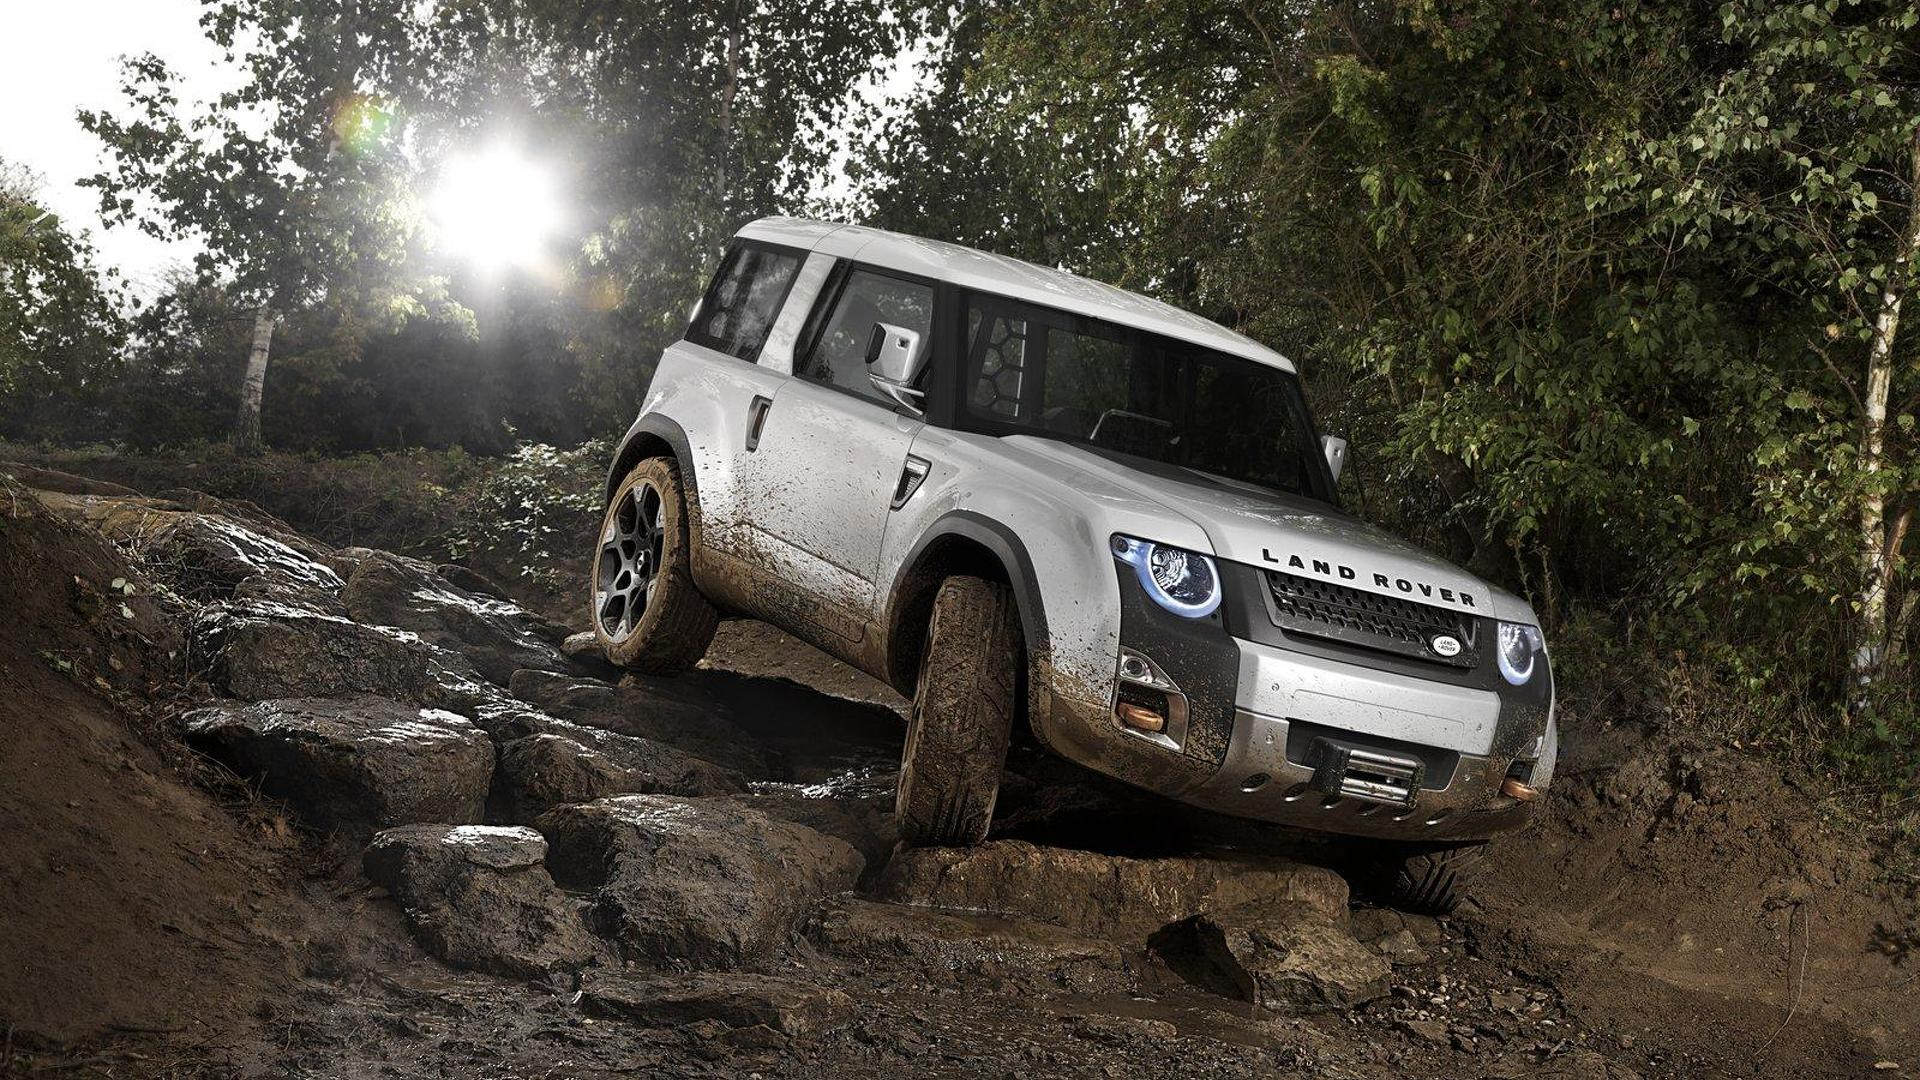 Land Rover finalizes the design of the next Defender - report